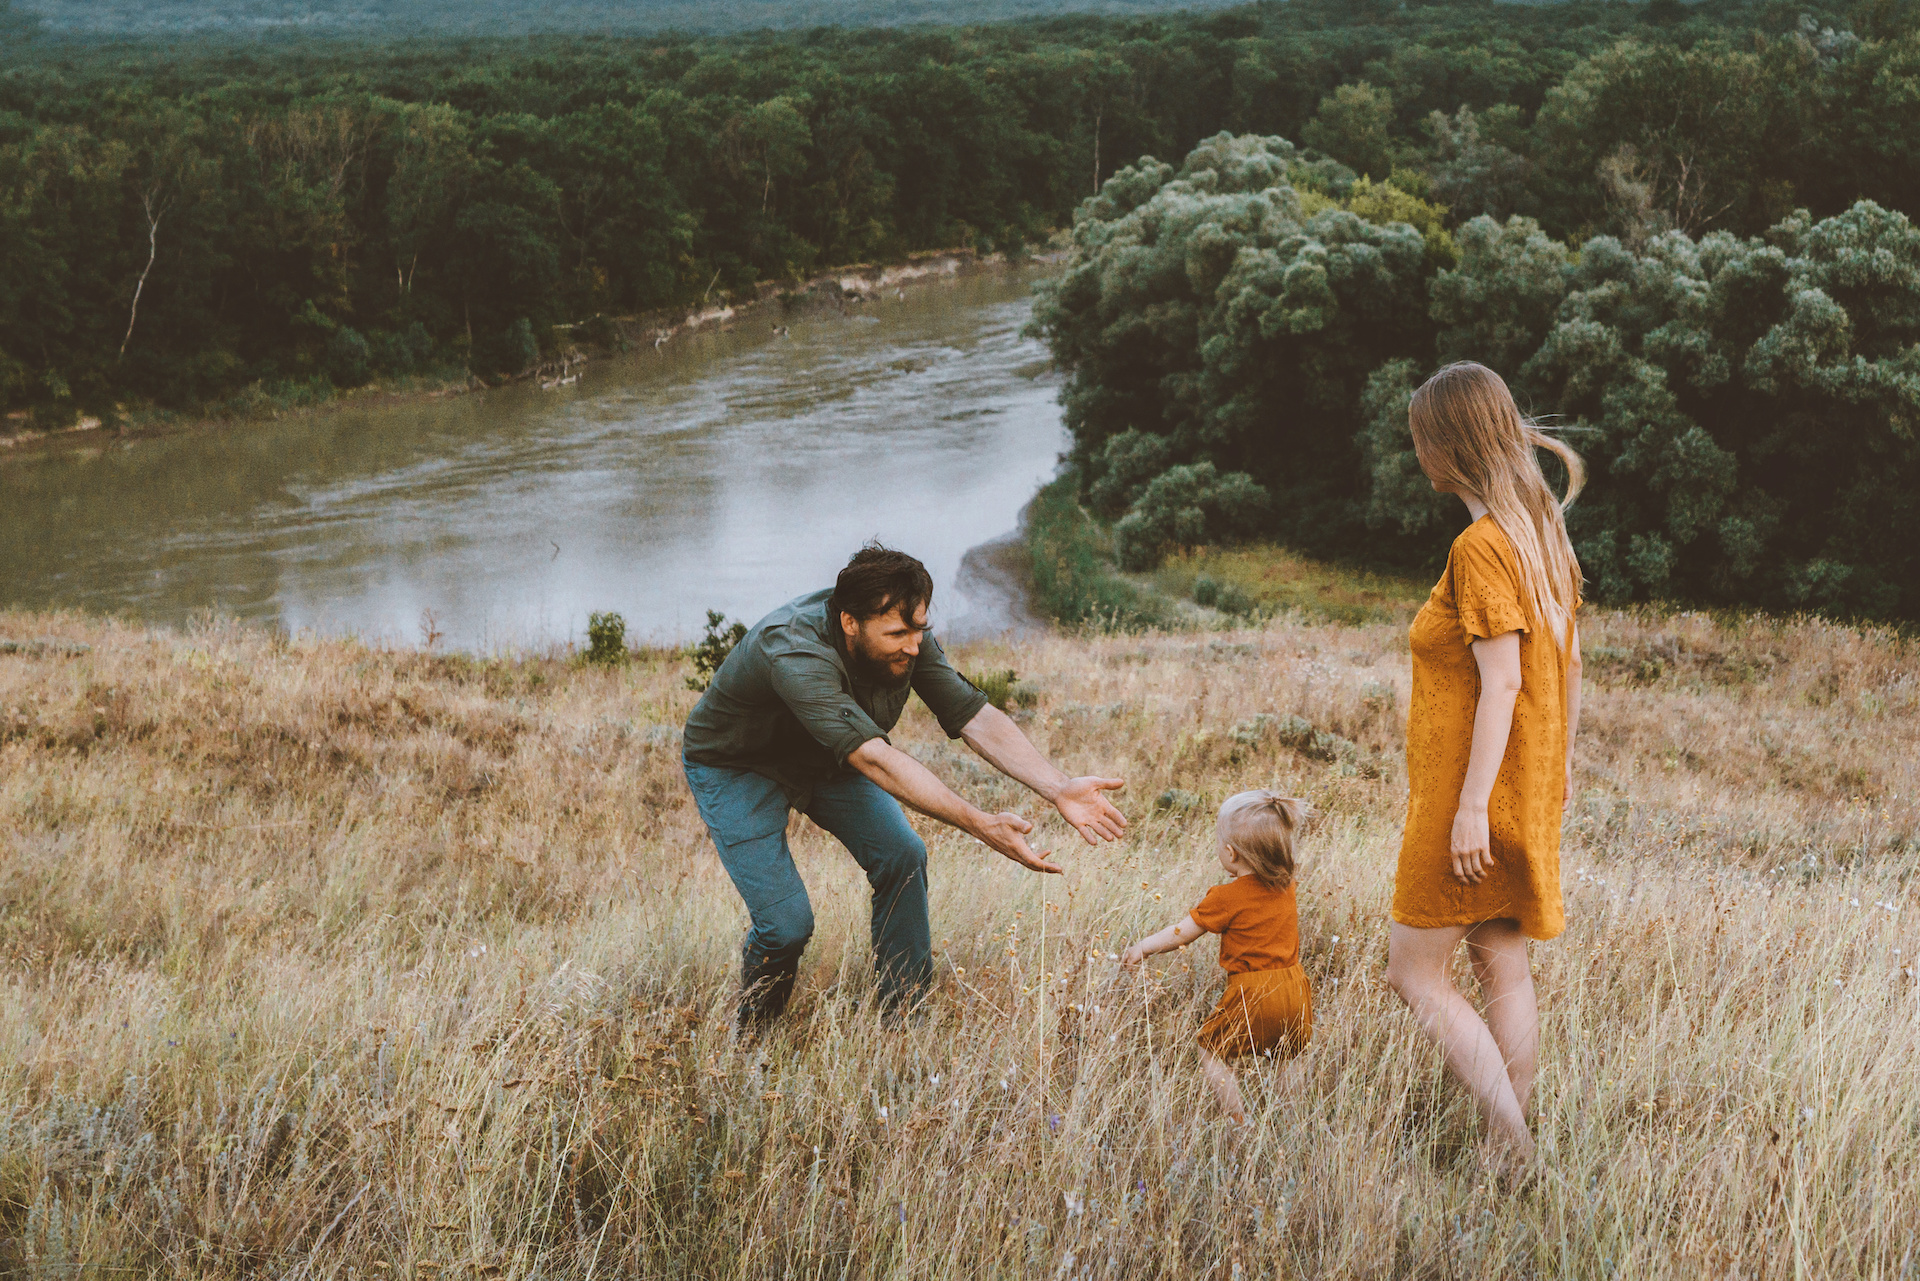 Parents walking with child outdoor family vacation mother and father with baby toddler healthy lifestyle countryside nature river and forest view